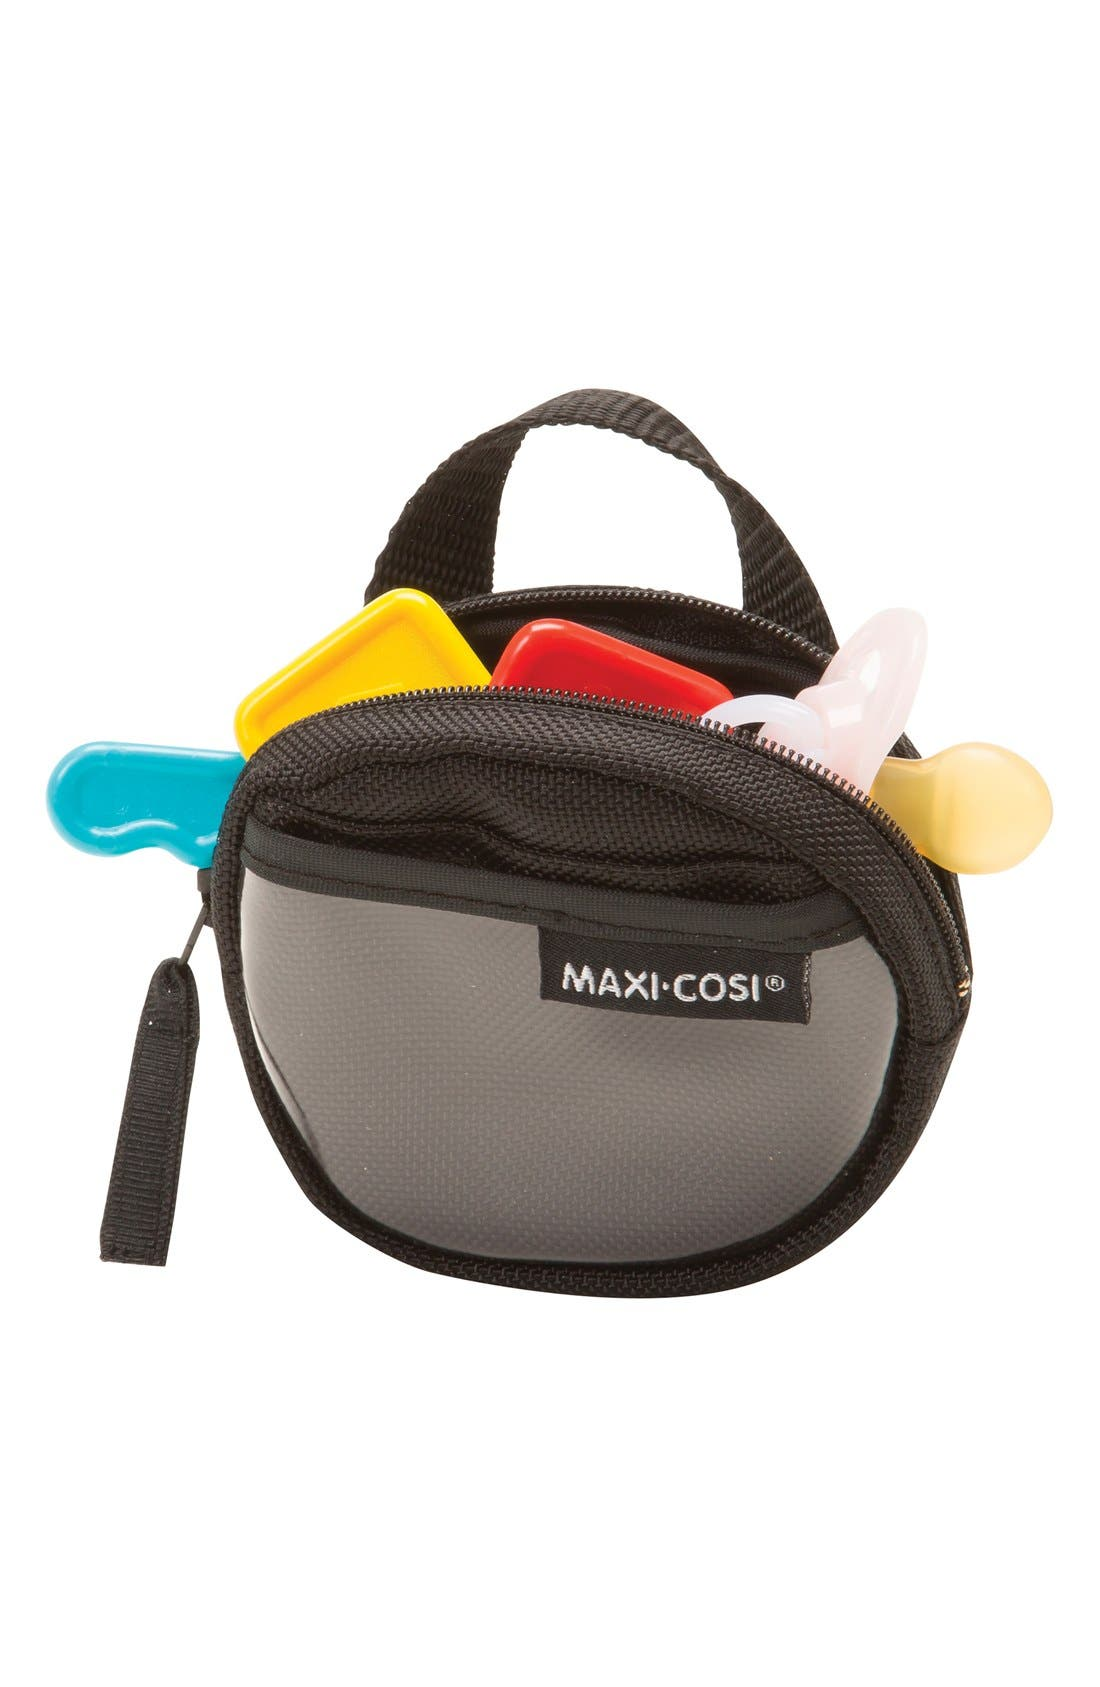 Alternate Image 1 Selected - Maxi-Cosi® 'Cosi Keeper' Pouch